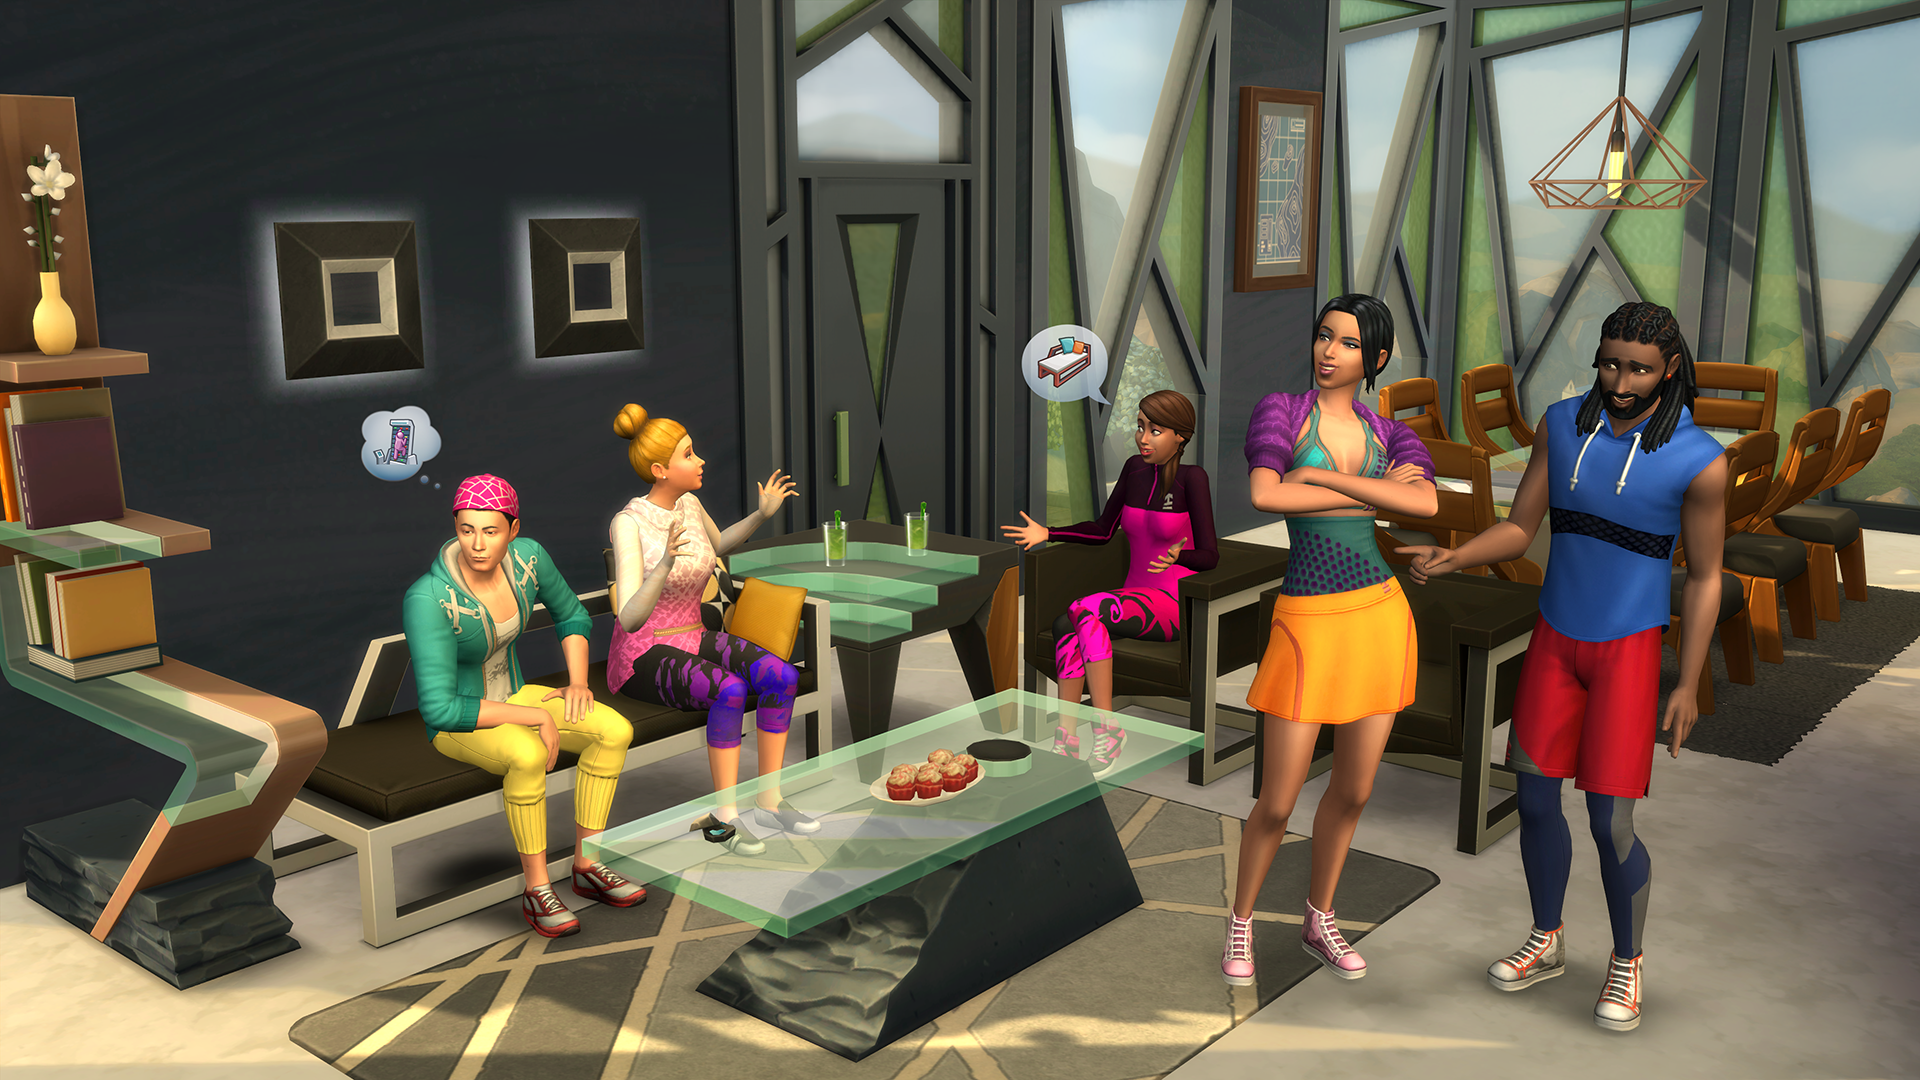 Buy The Sims 4 Fitness Stuff